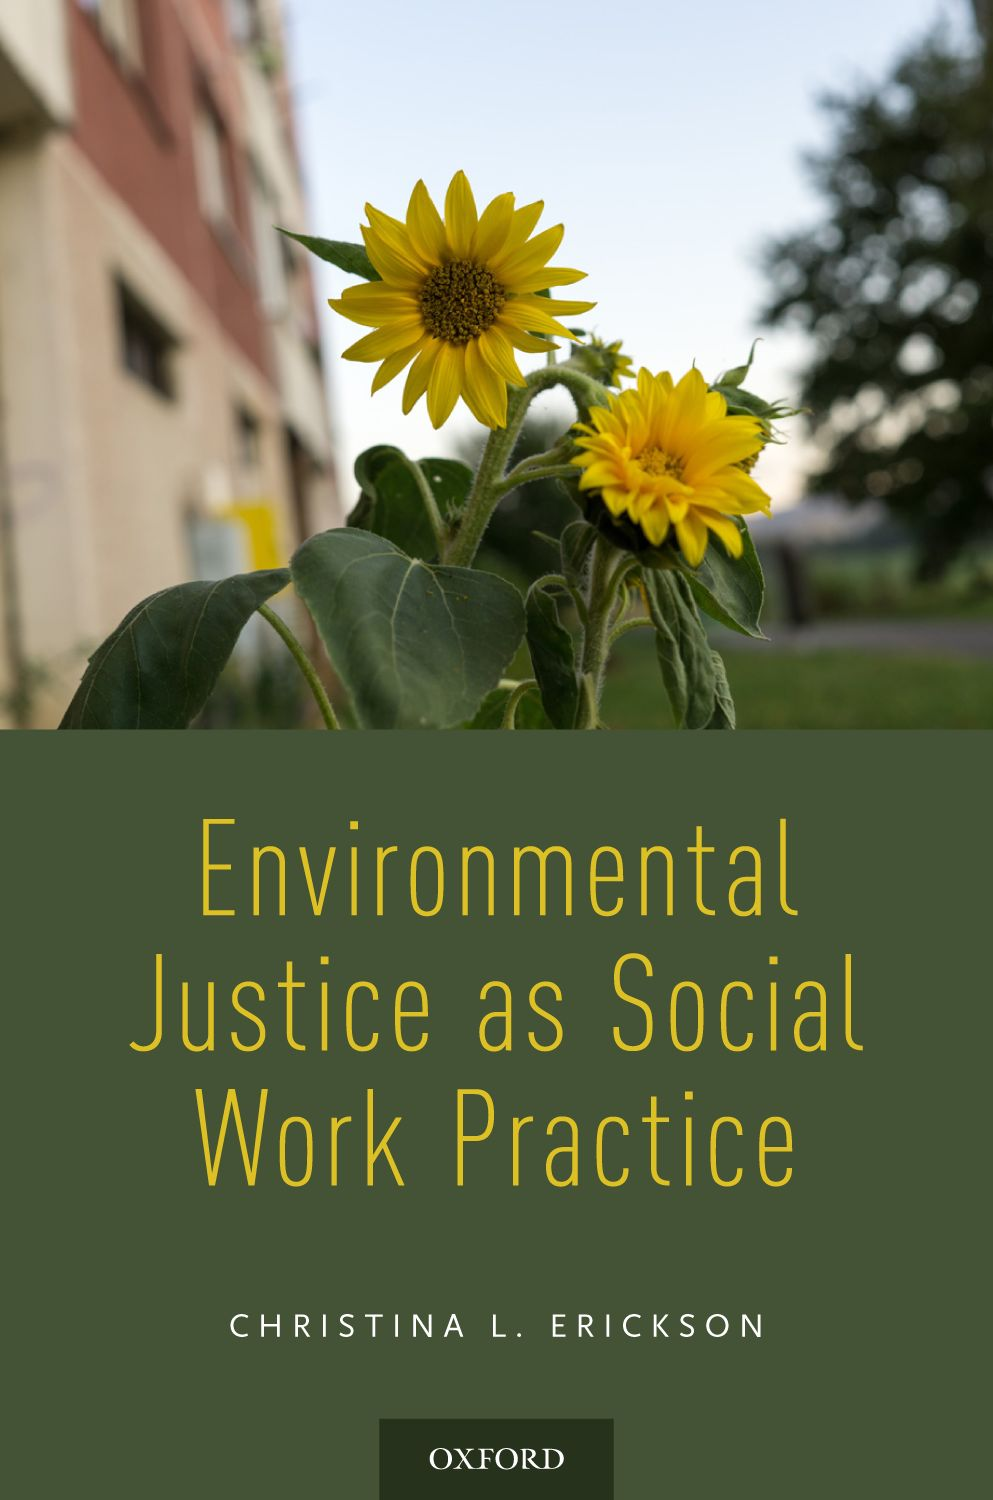 Environmental Justice as Social Work Practice Instructor Resources